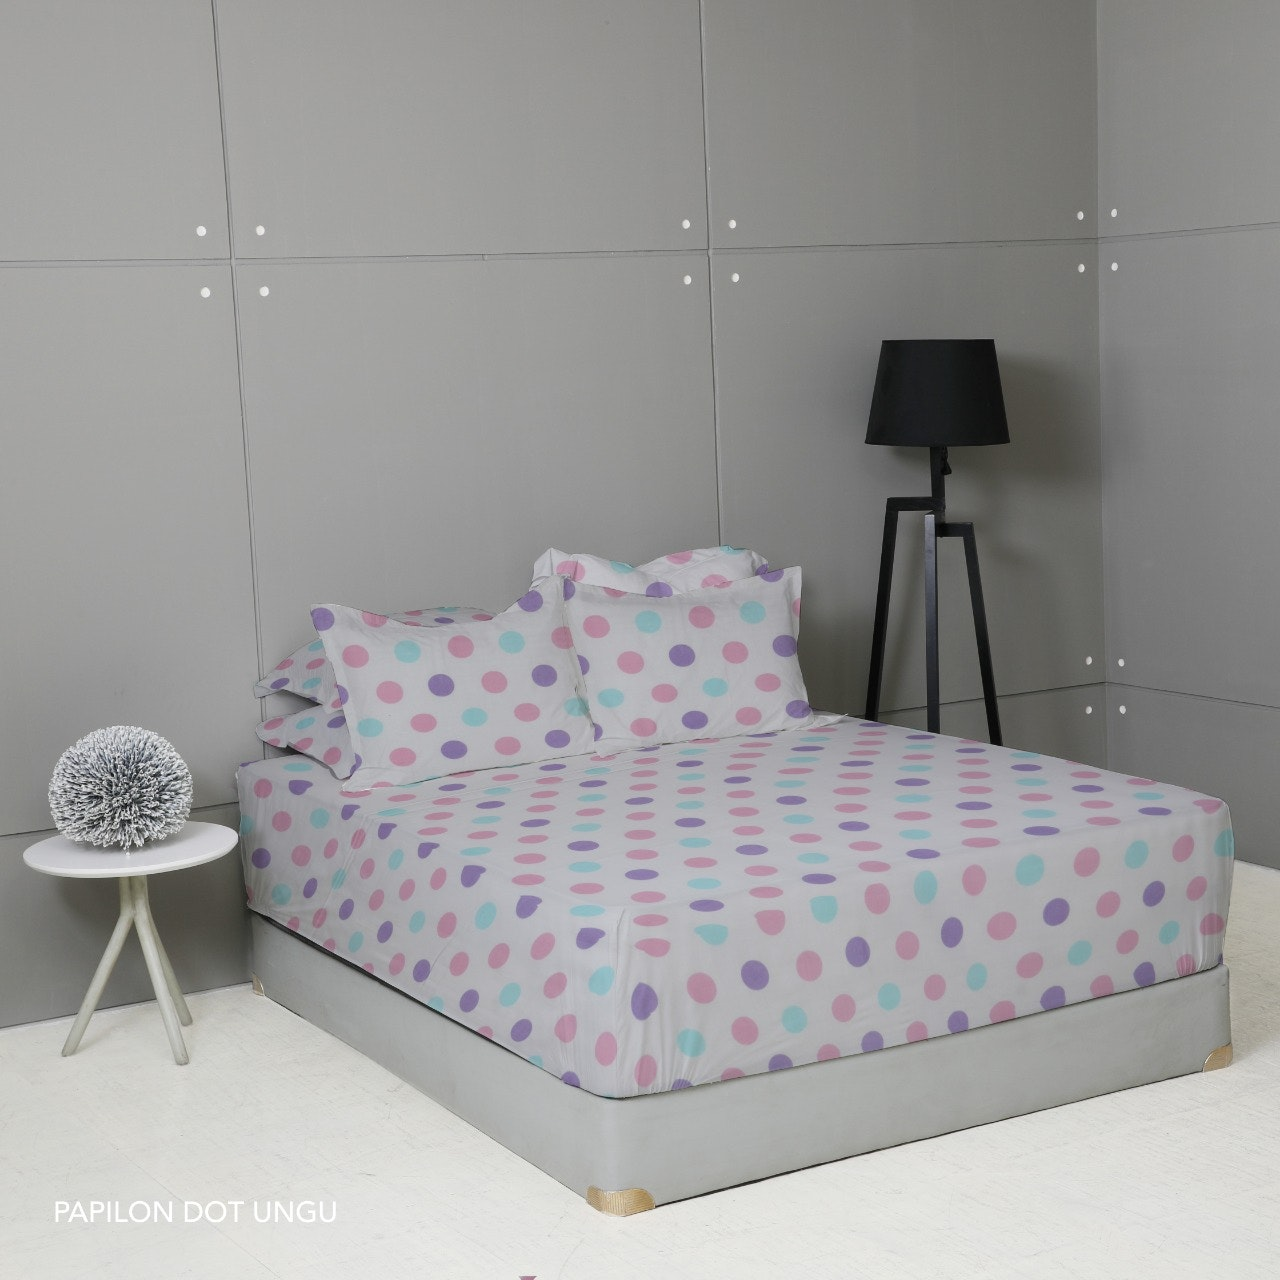 King Rabbit 7STAR Set Sprei Sarung Bantal King Motif Papilon Dot - Ungu Uk 180x200x40cm